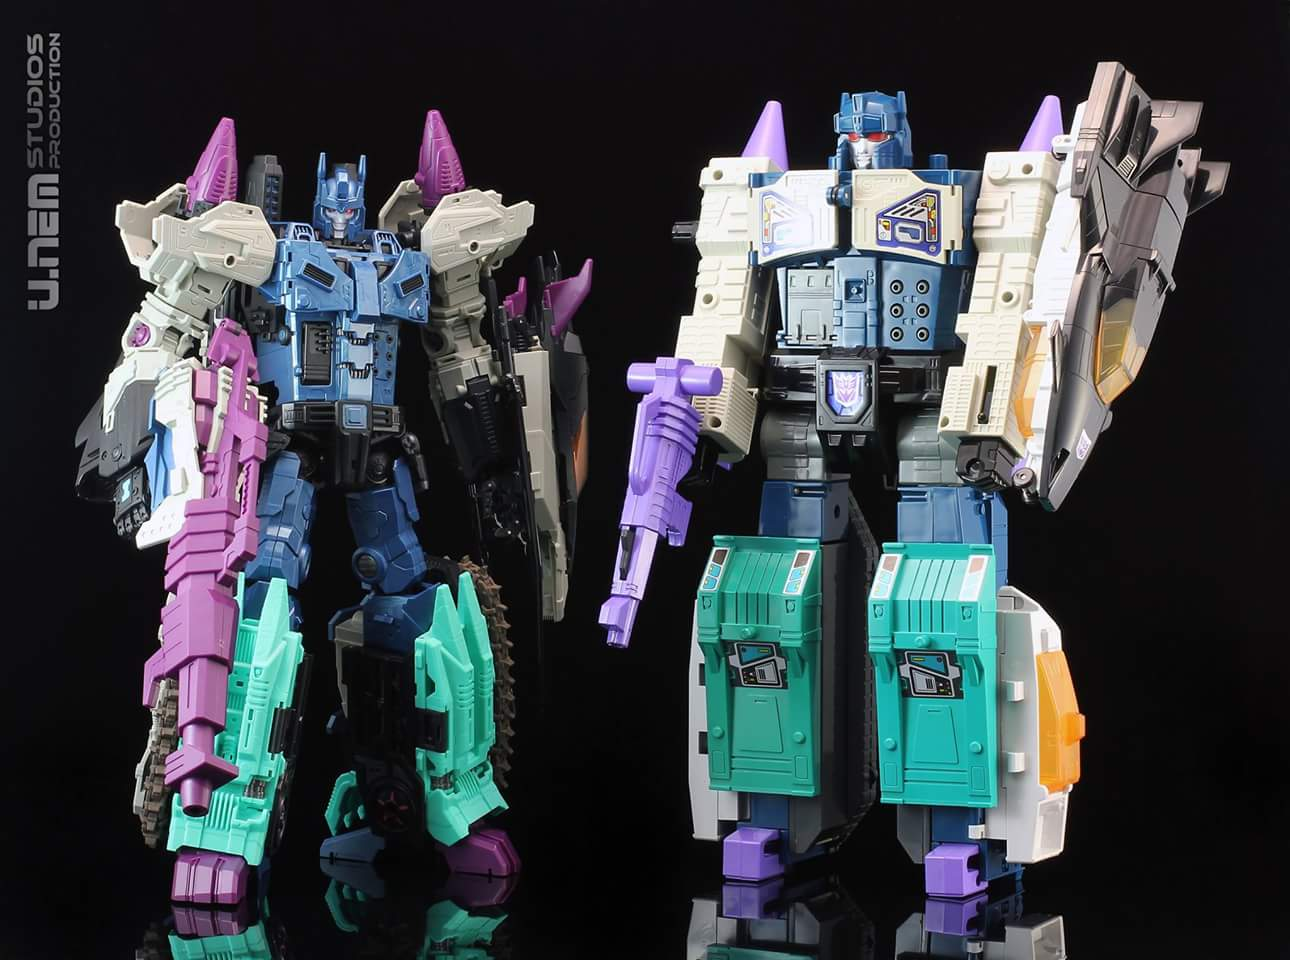 [Mastermind Creations] Produit Tiers - R-17 Carnifex - aka Overlord (TF Masterforce) - Page 2 ApNi9ysE